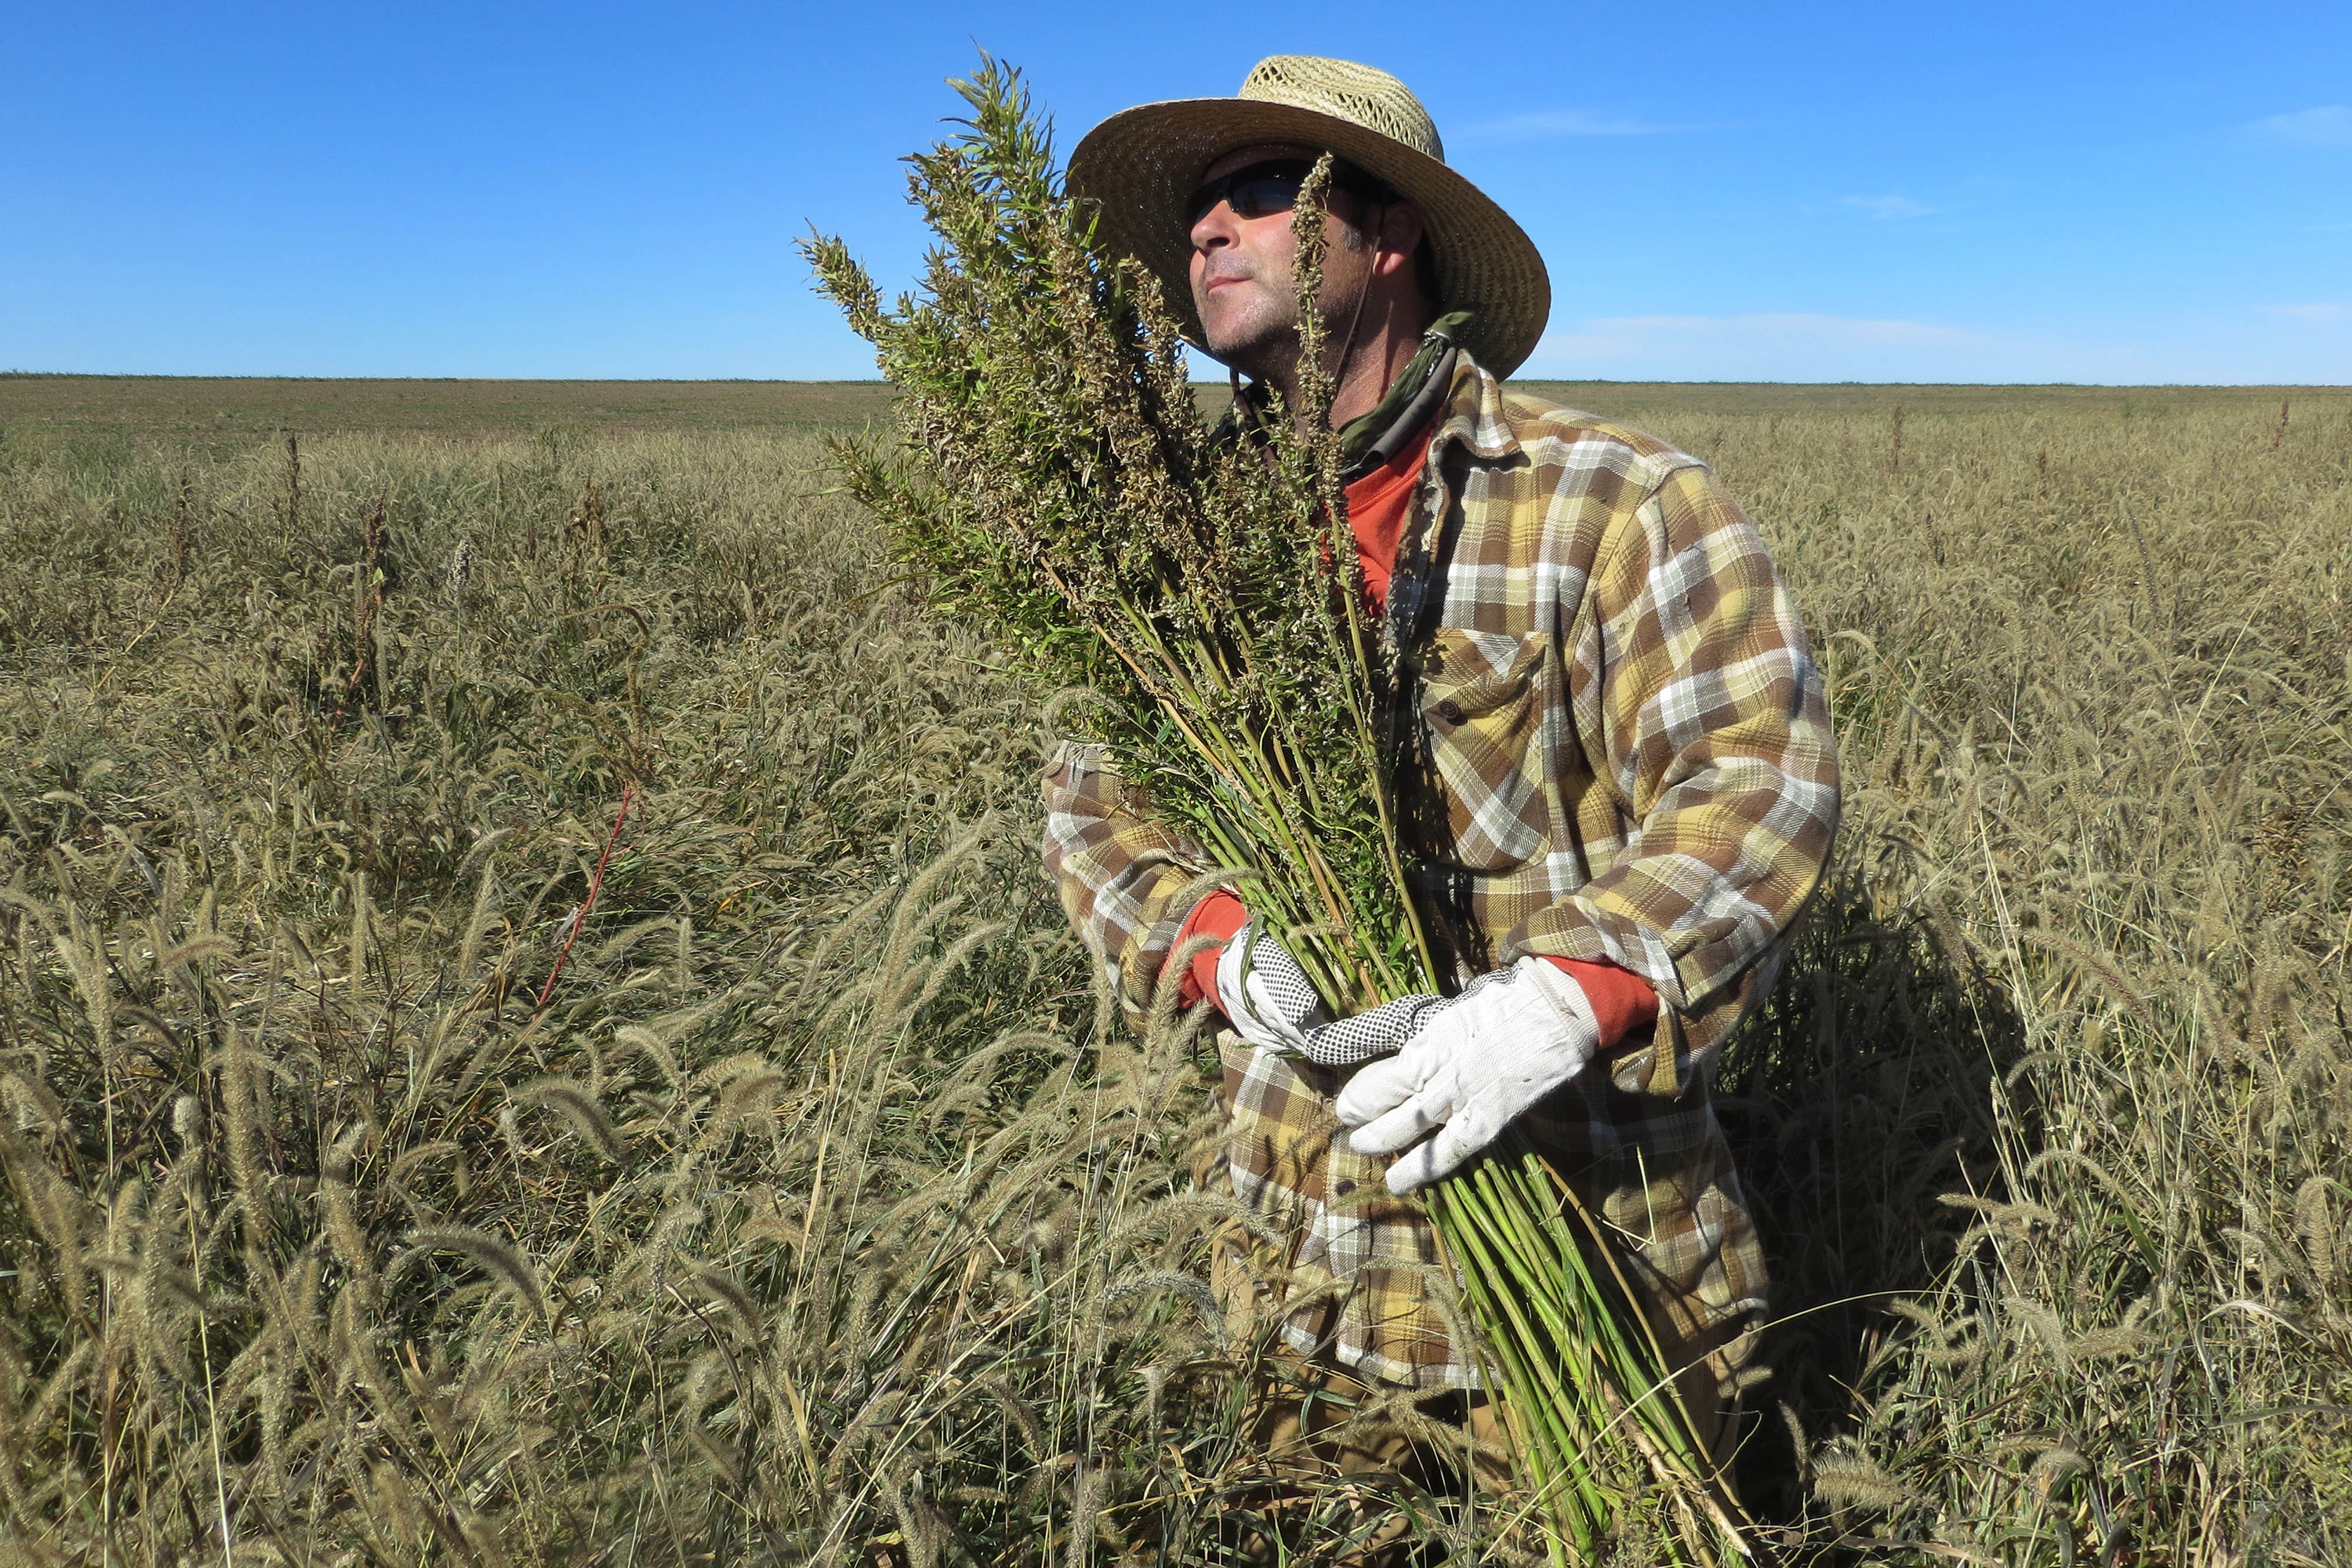 Photo: Harvesting Hemp In Springfield, Colorado